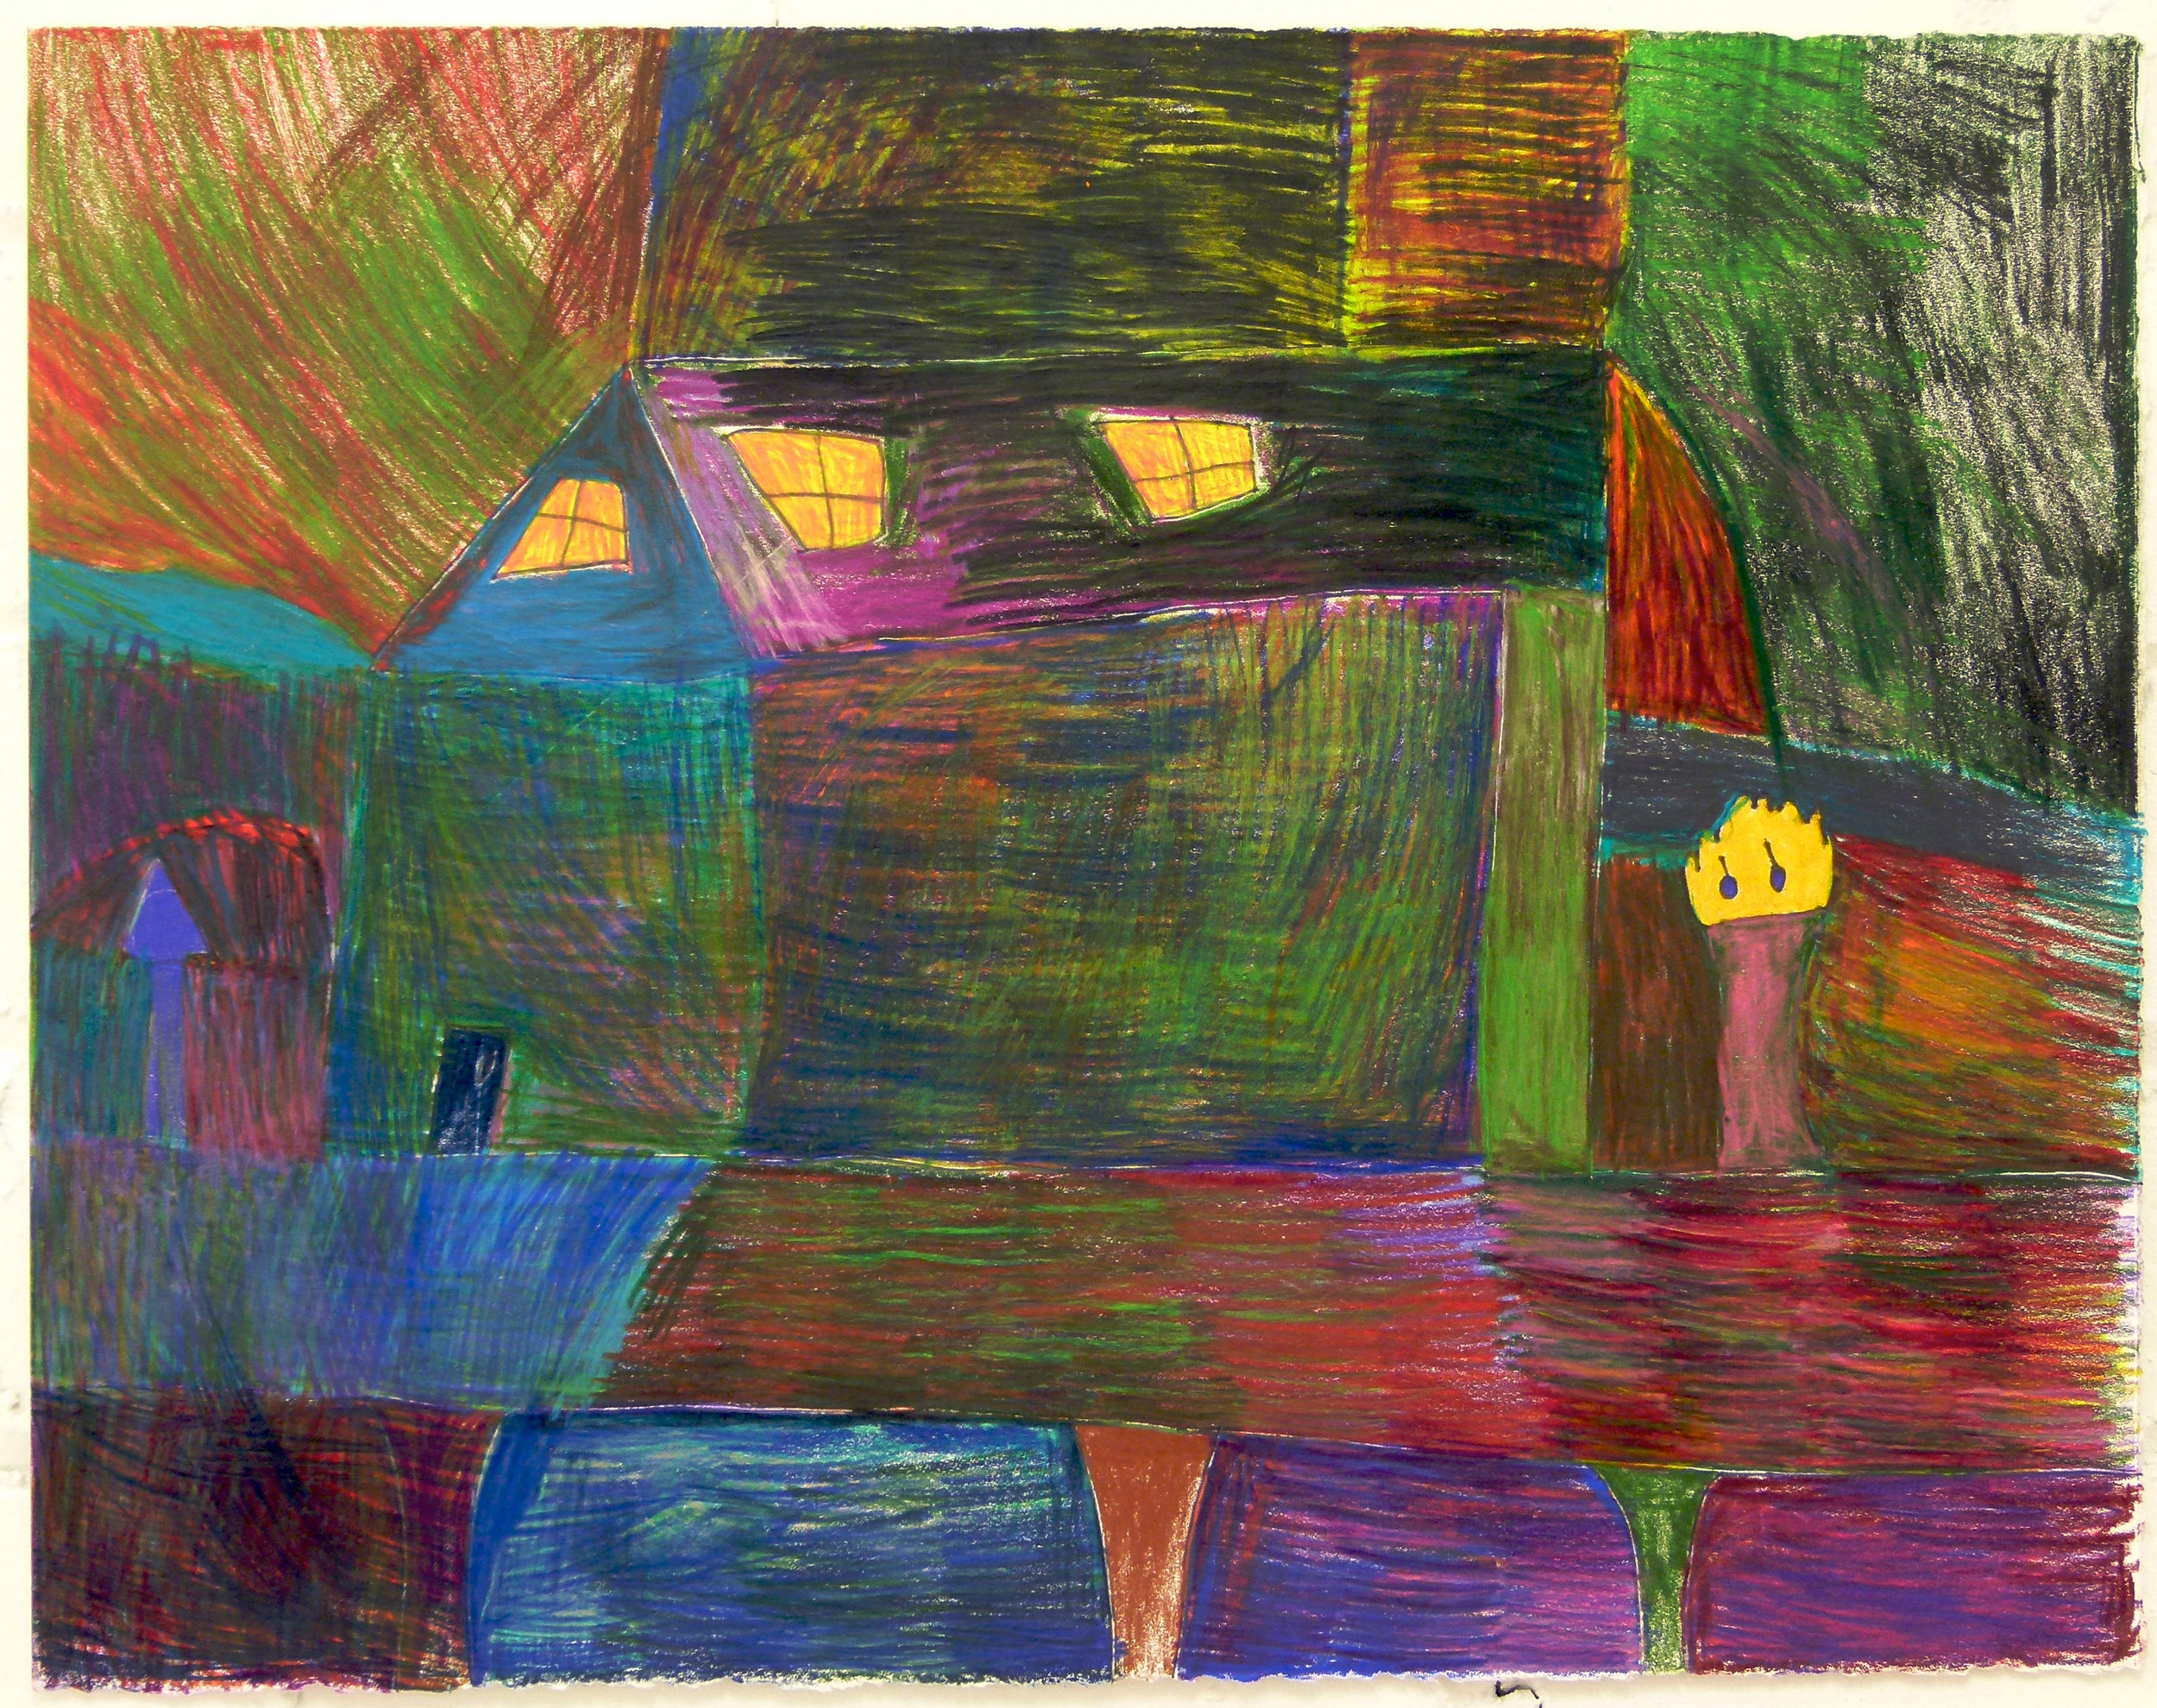 Francisco Andrade, Untitled (FA 002), Work on paper, 11.75 x 15 inches